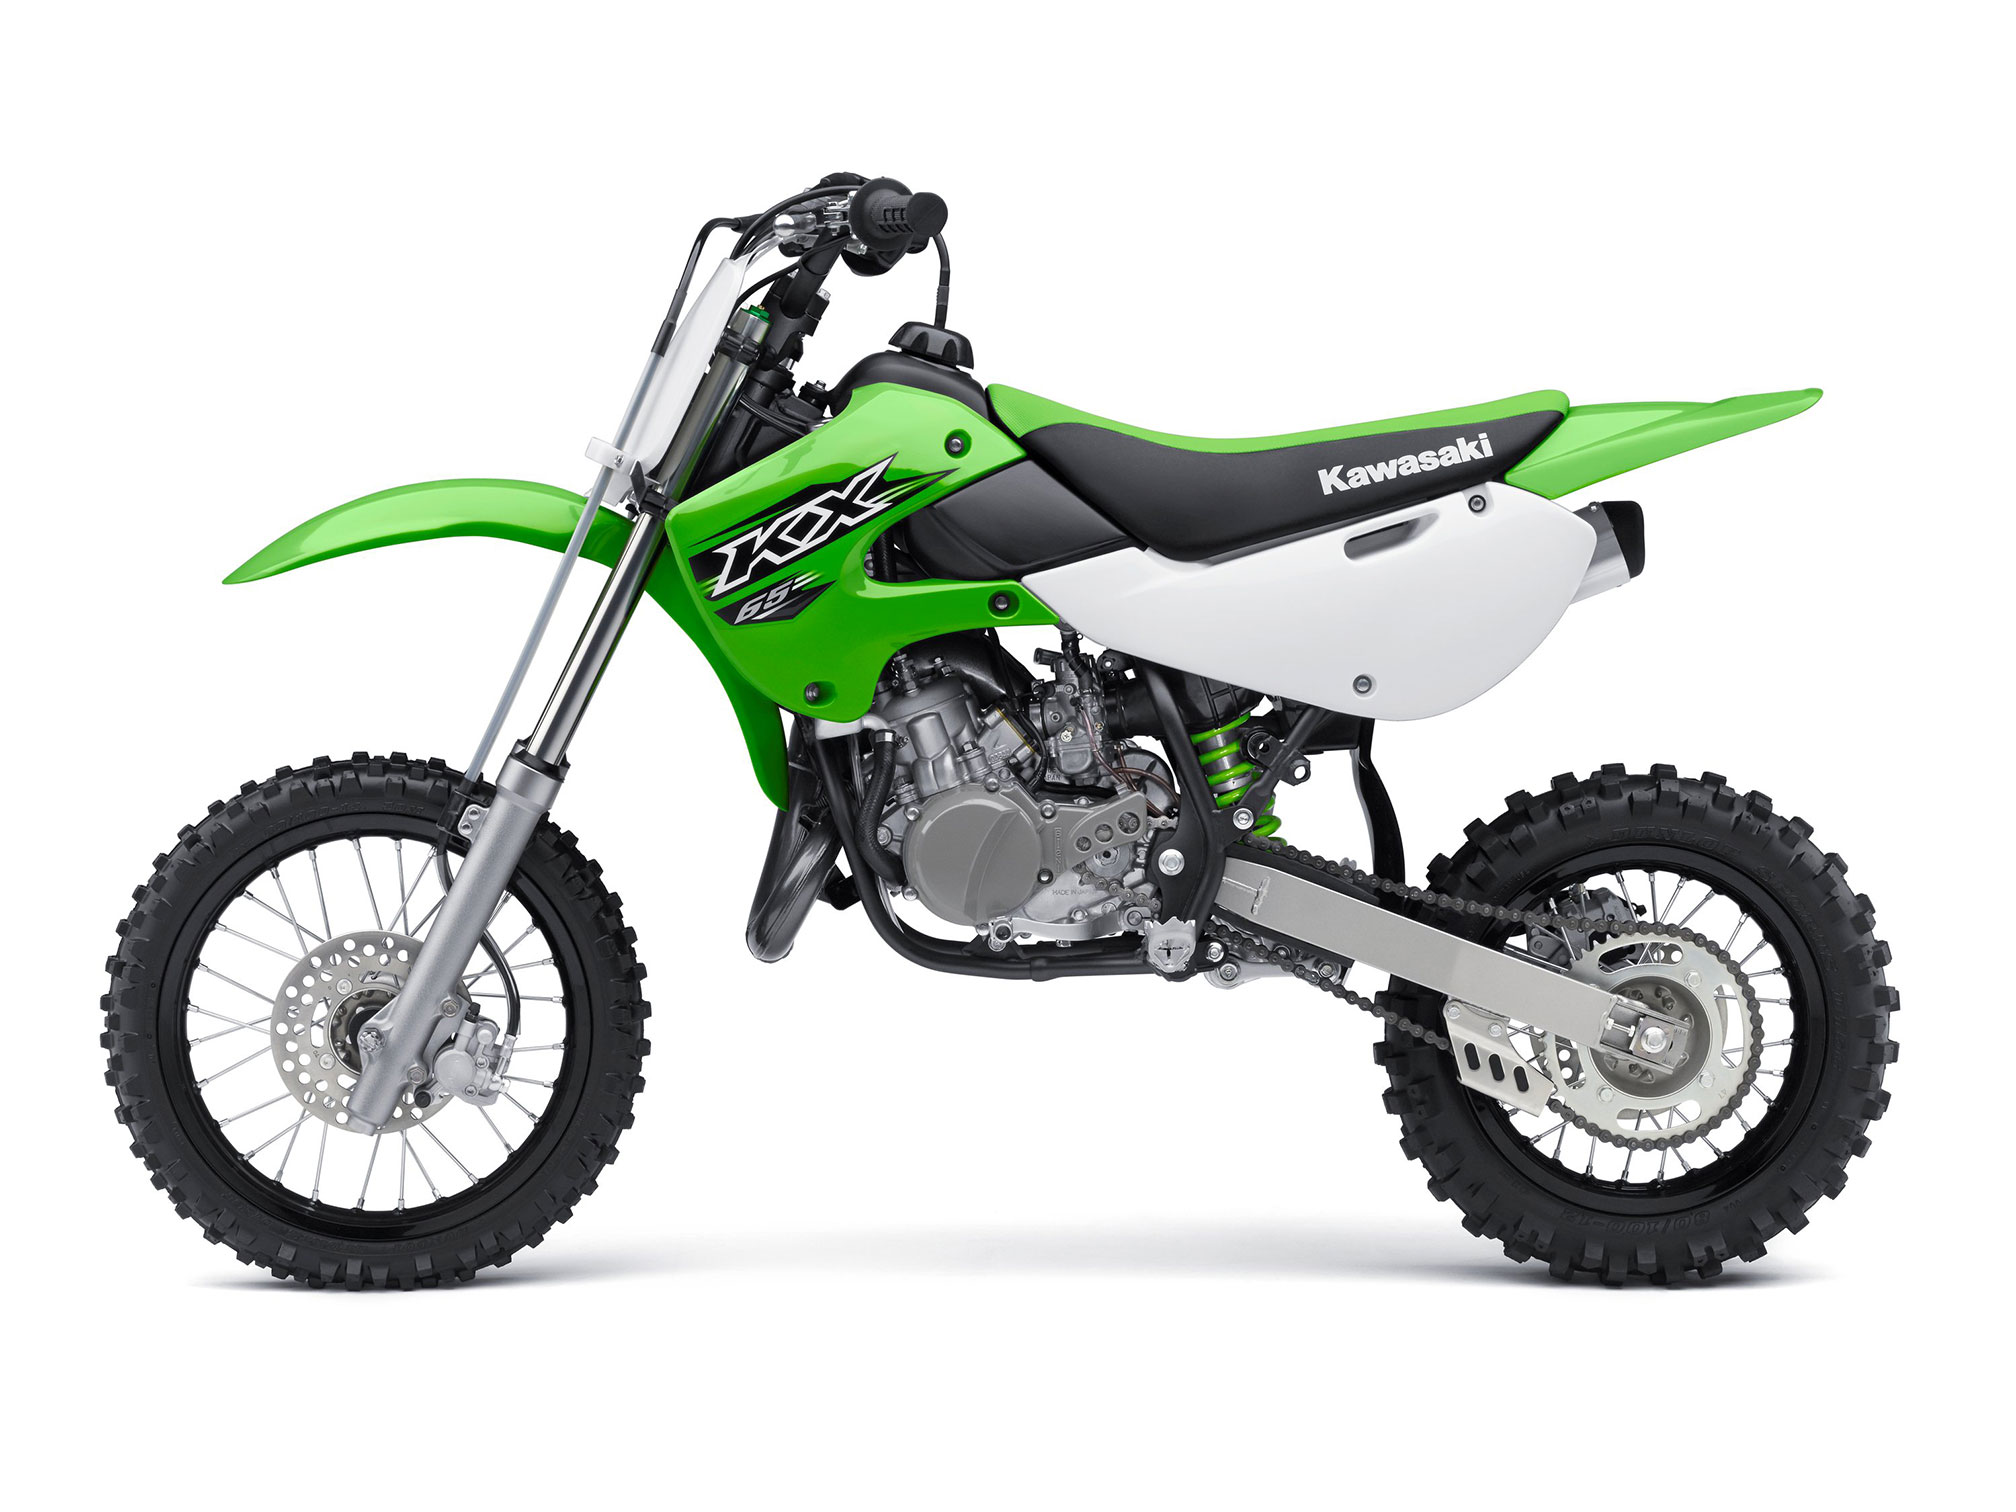 Kawasaki  Kxf  Review